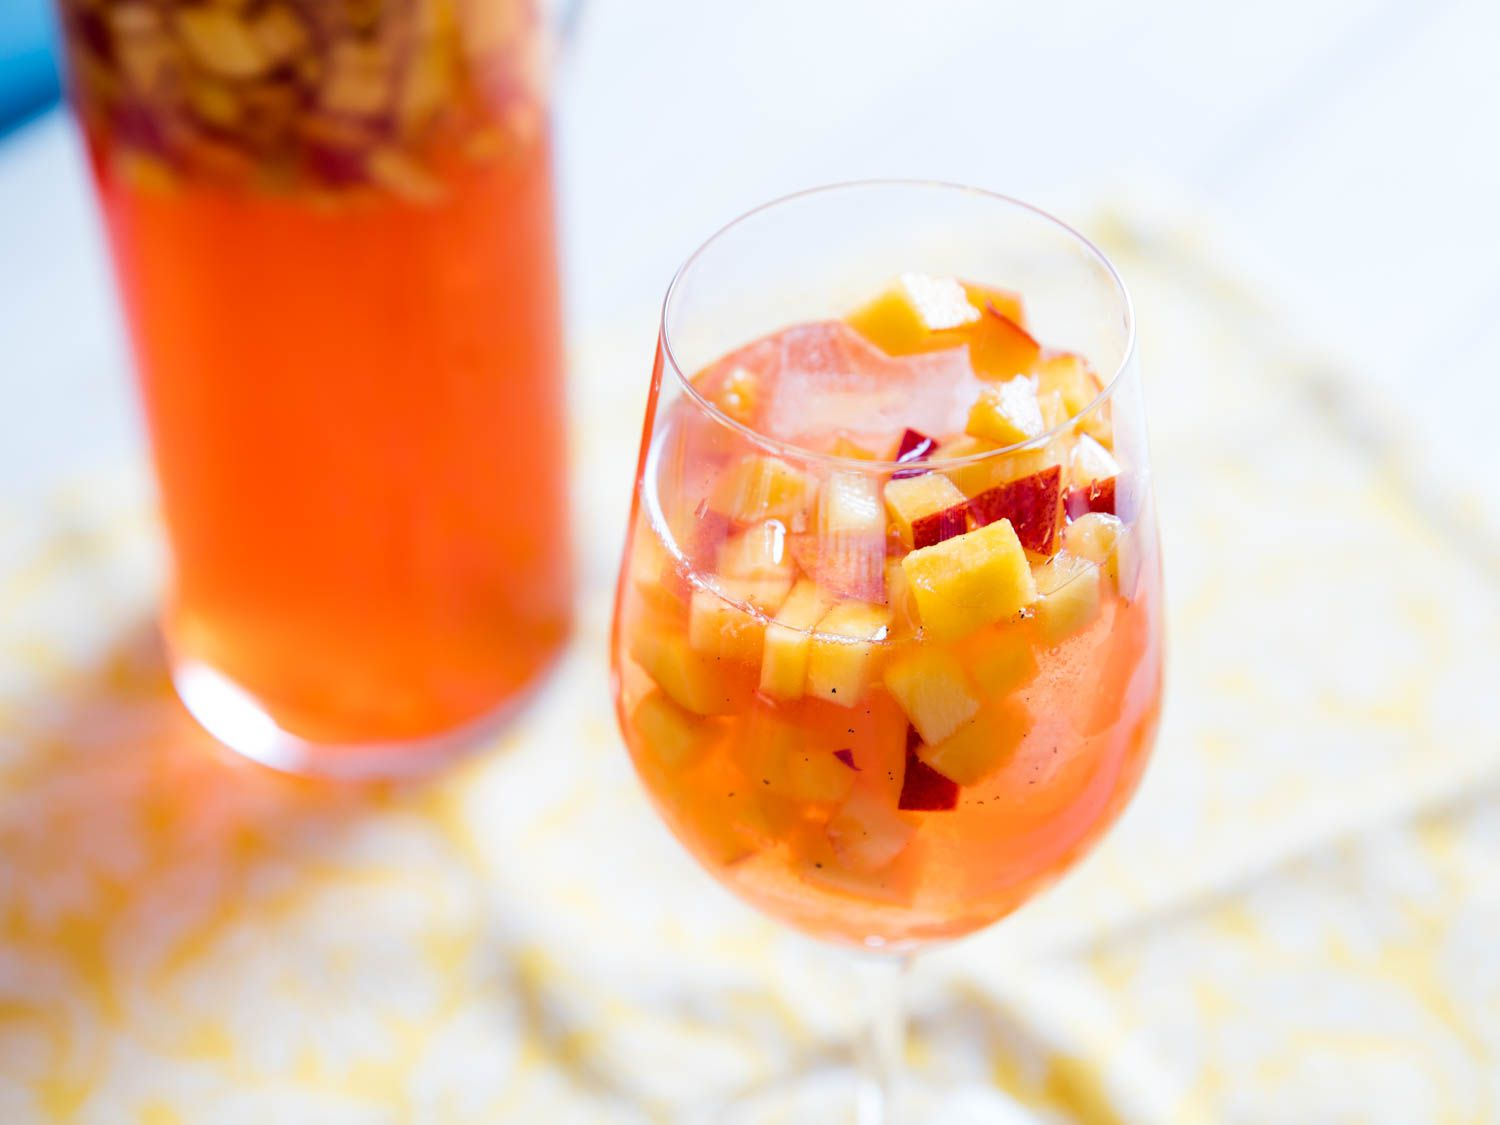 20160623-potluck-dishes-sparkling-rose-sangria-aperol-peach-vicky-wasik-7.jpg